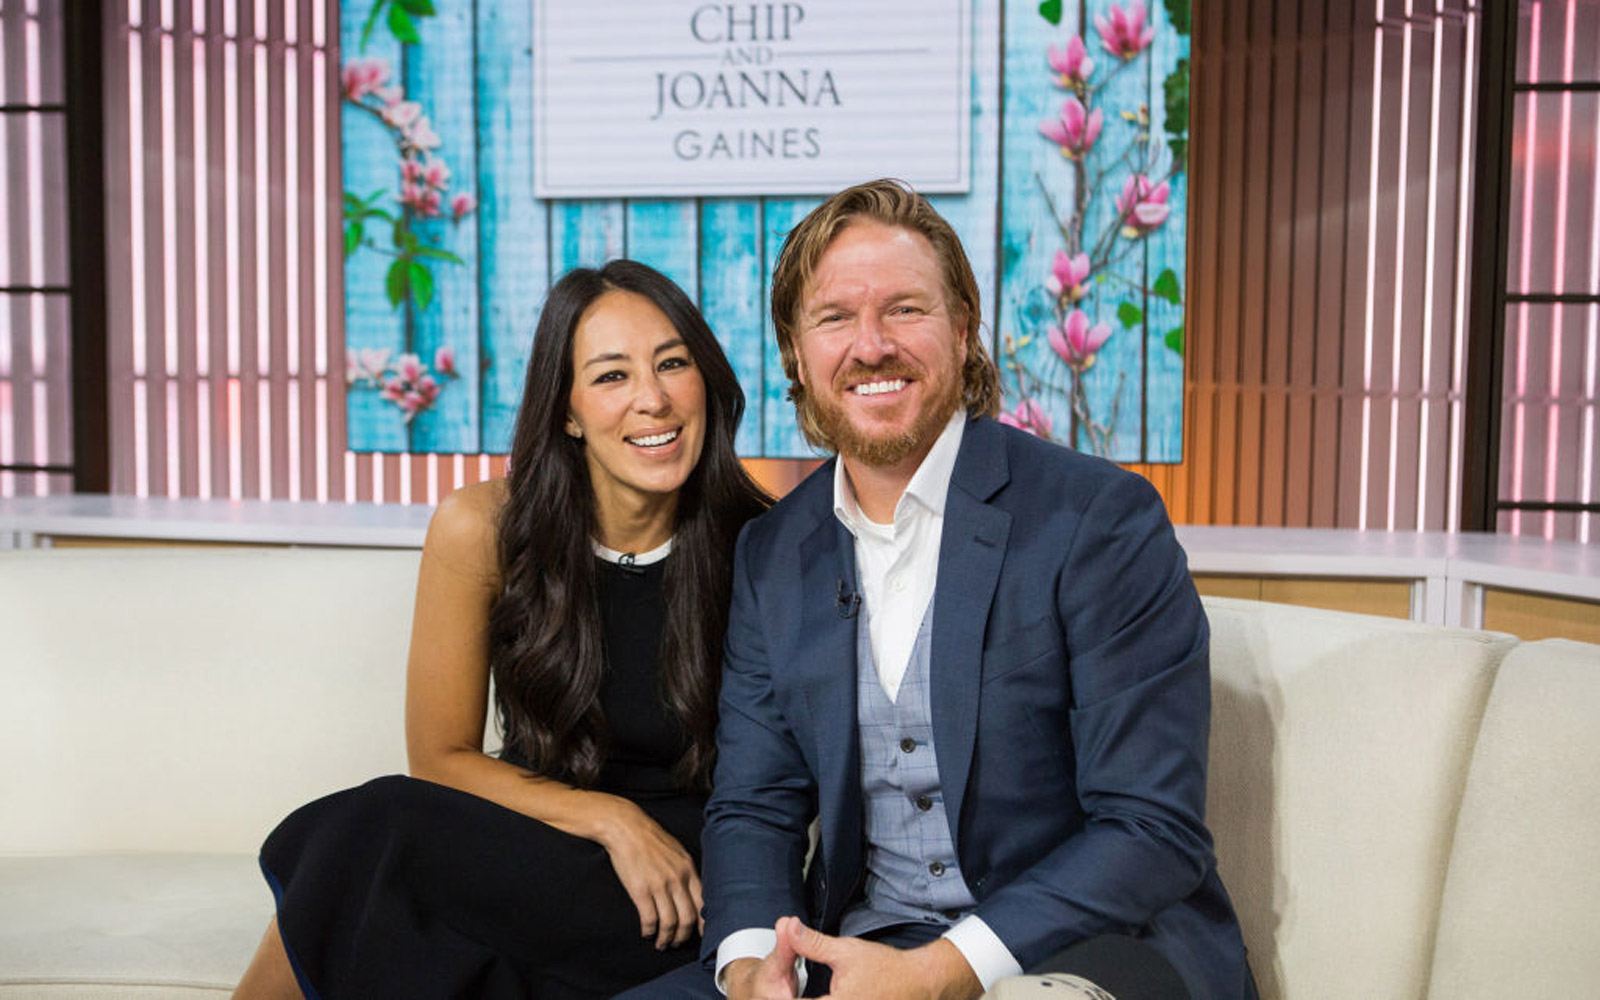 The End of 'Fixer Upper' May Have Been Caused by This One Tweet